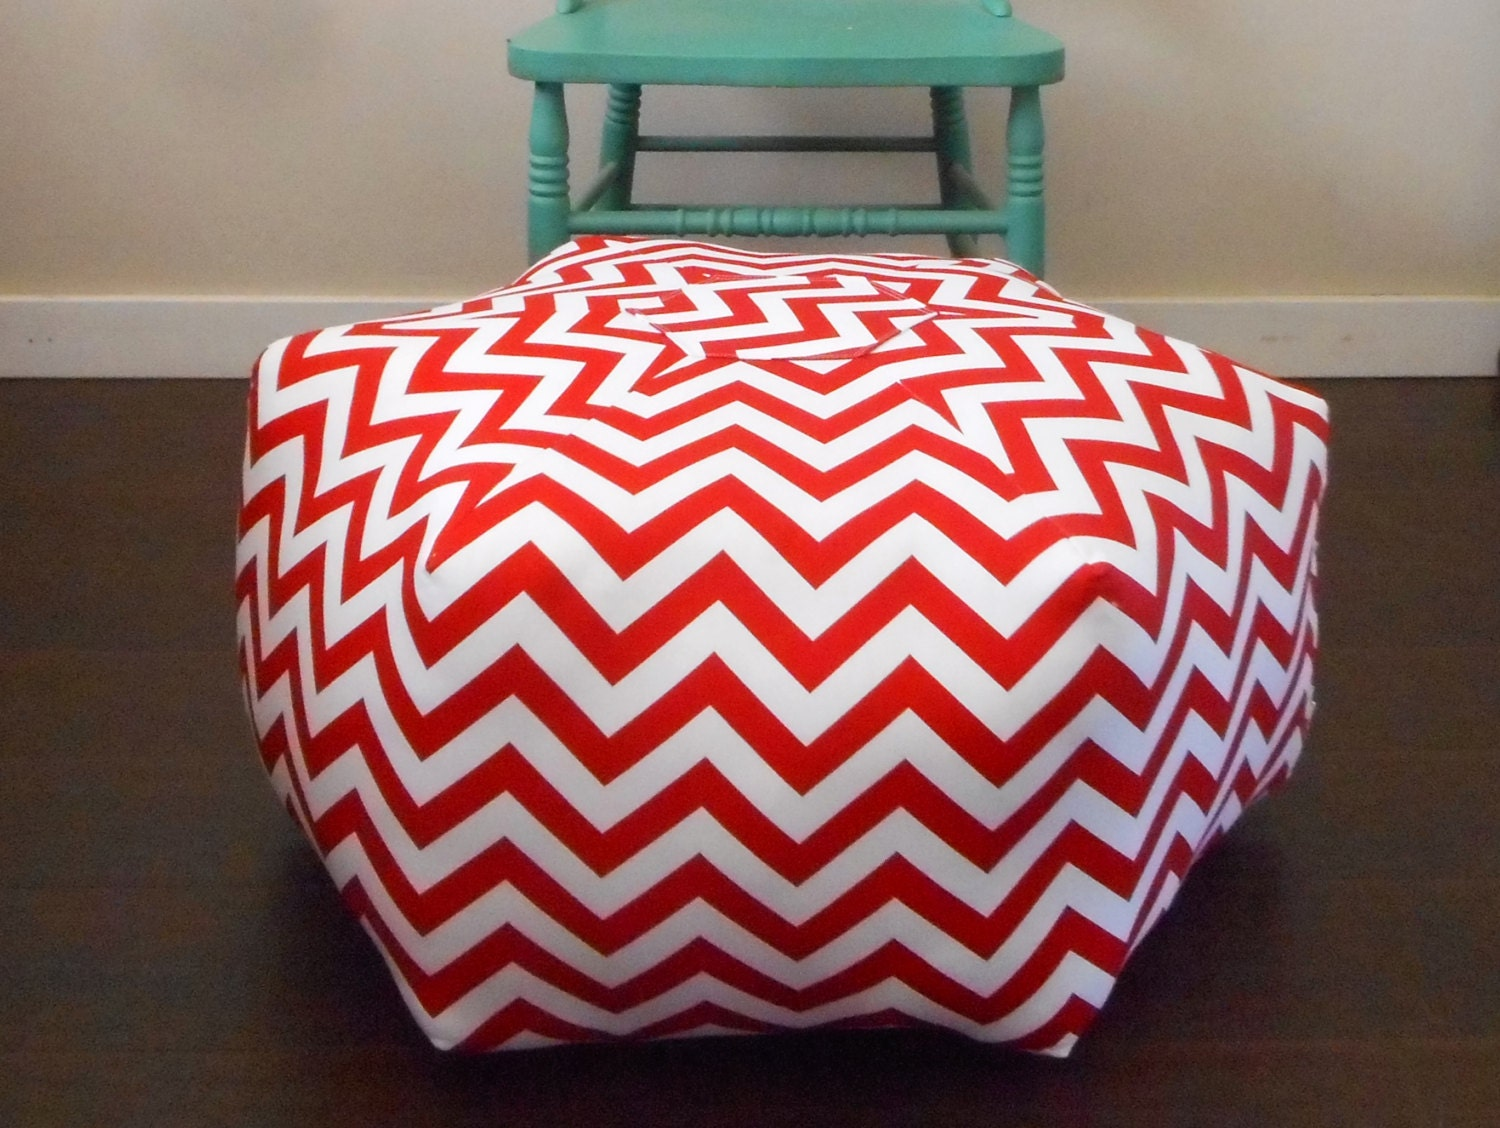 Giant Chevron Floor Pillows : Pouf Ottoman / Floor Pillow / Red Chevron / Large Floor Pouf